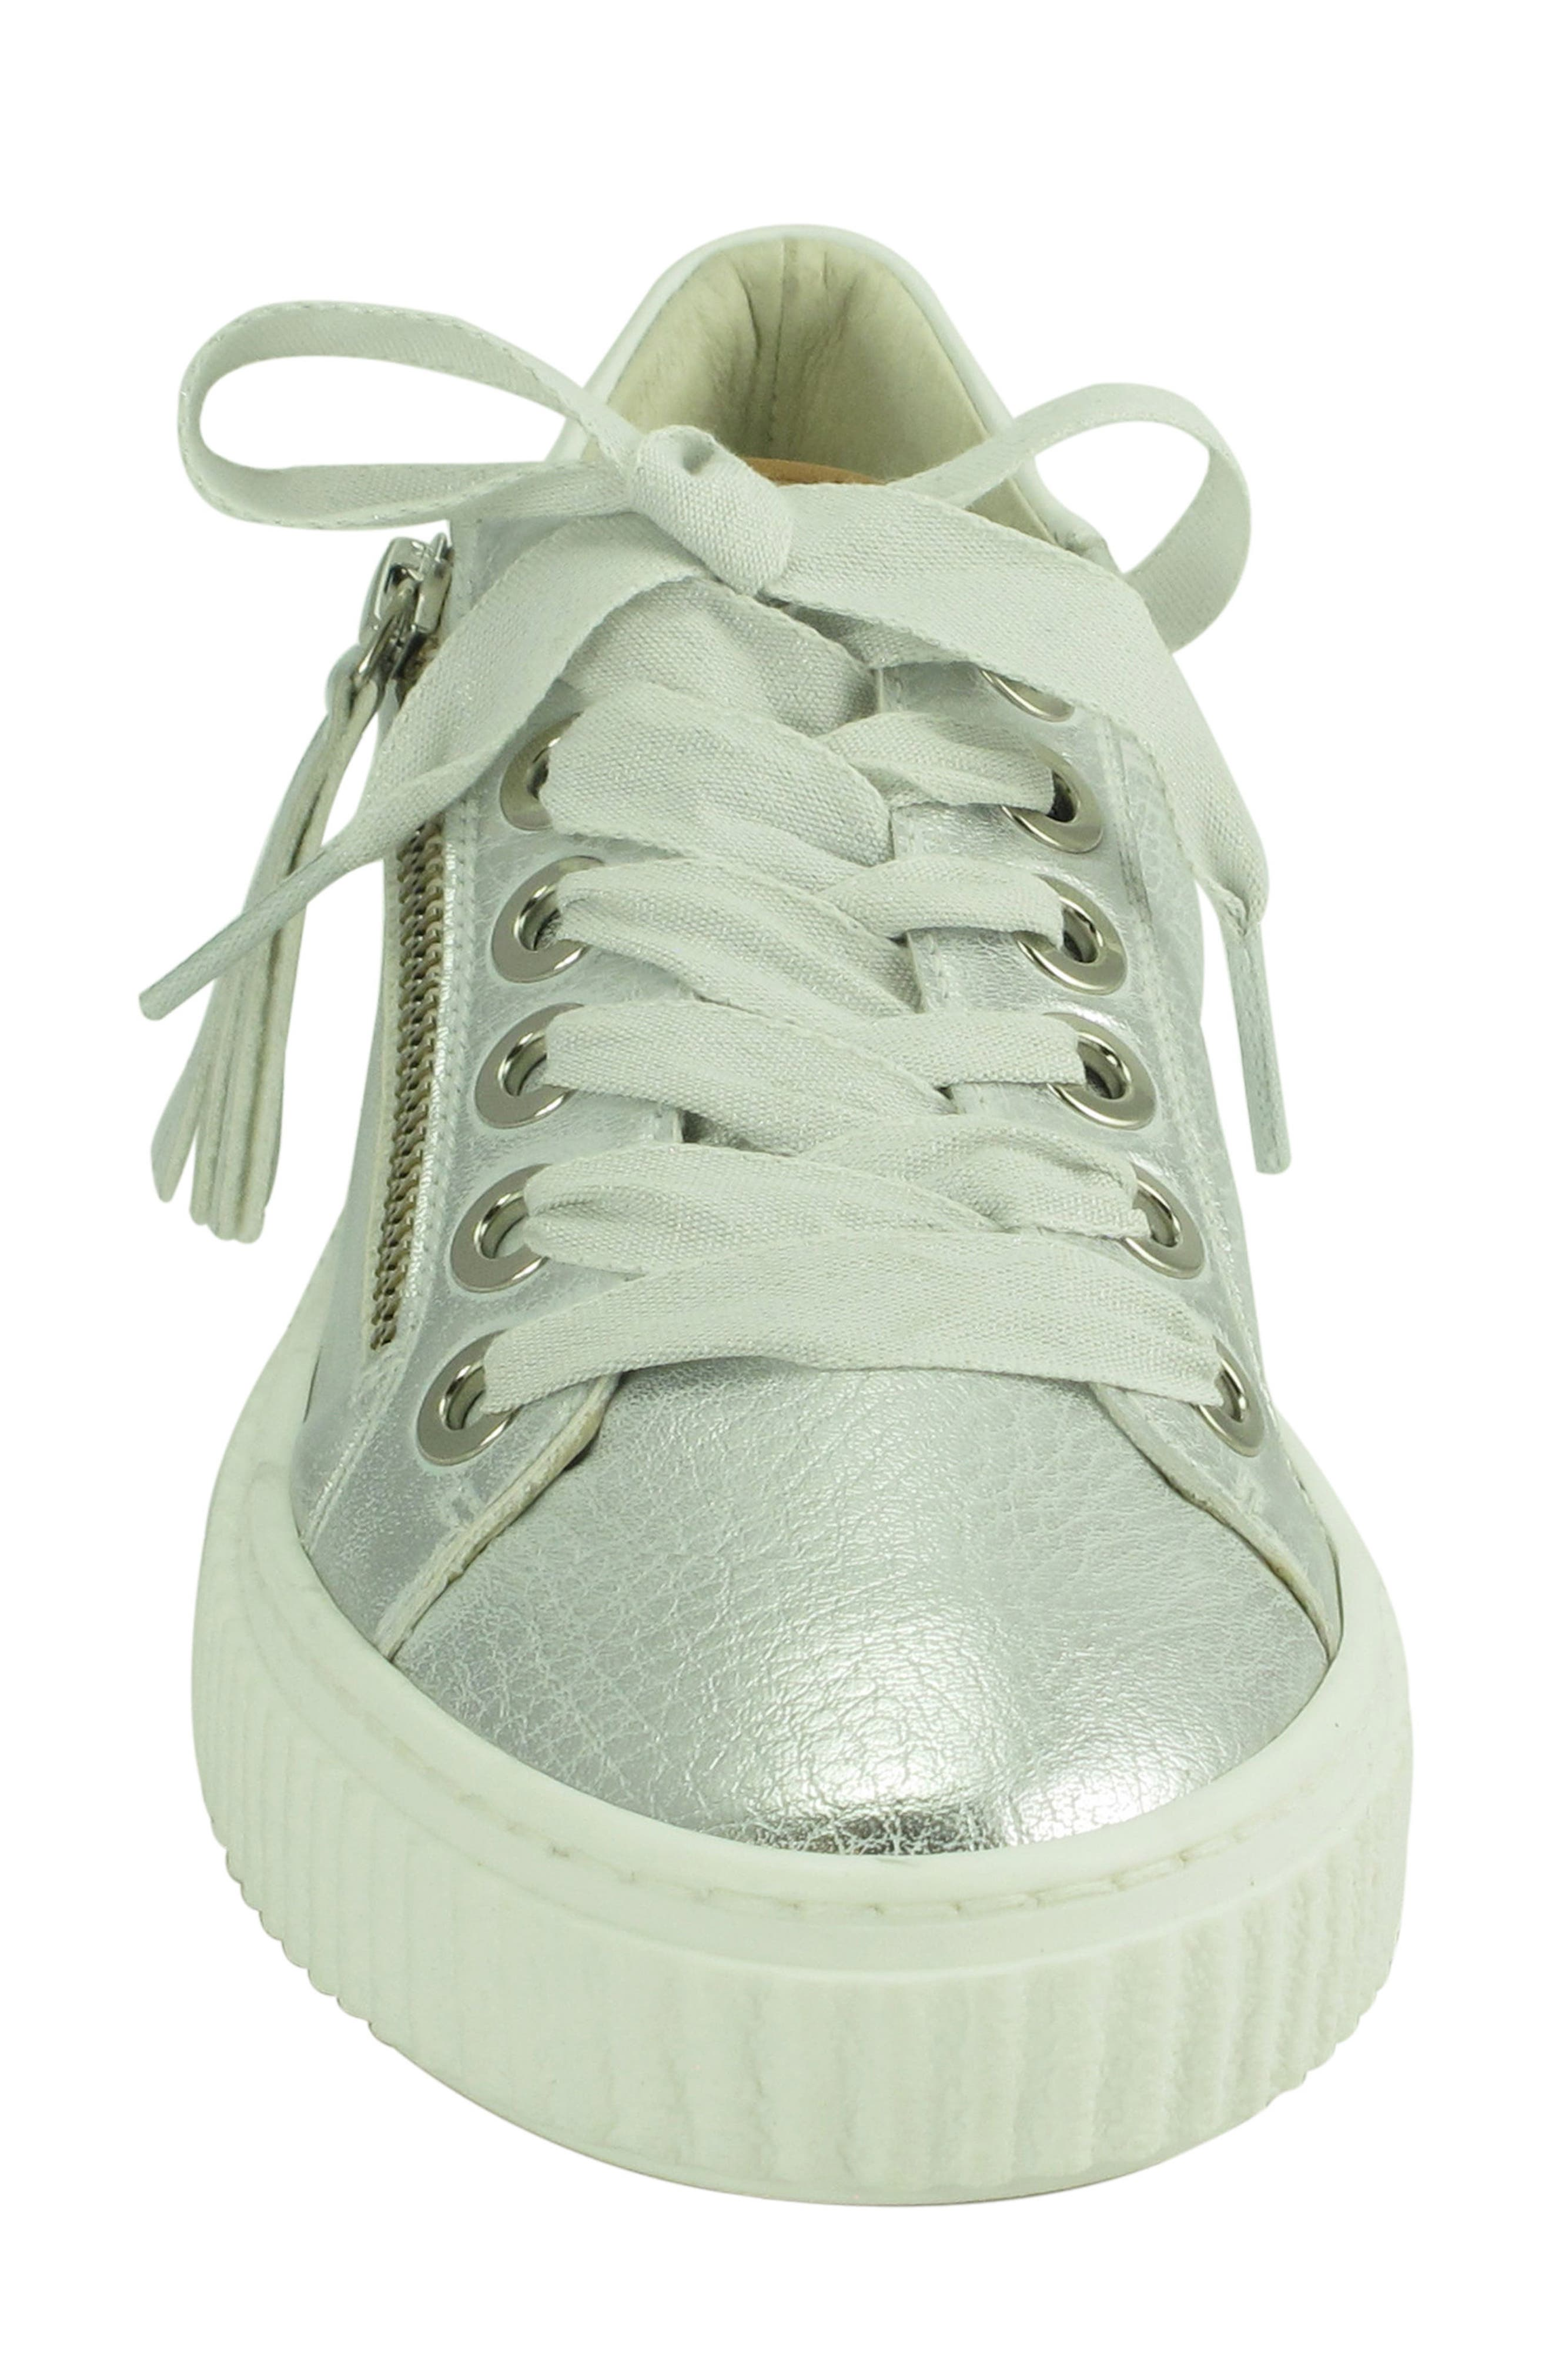 Posey Sneaker,                             Alternate thumbnail 4, color,                             SILVER LEATHER